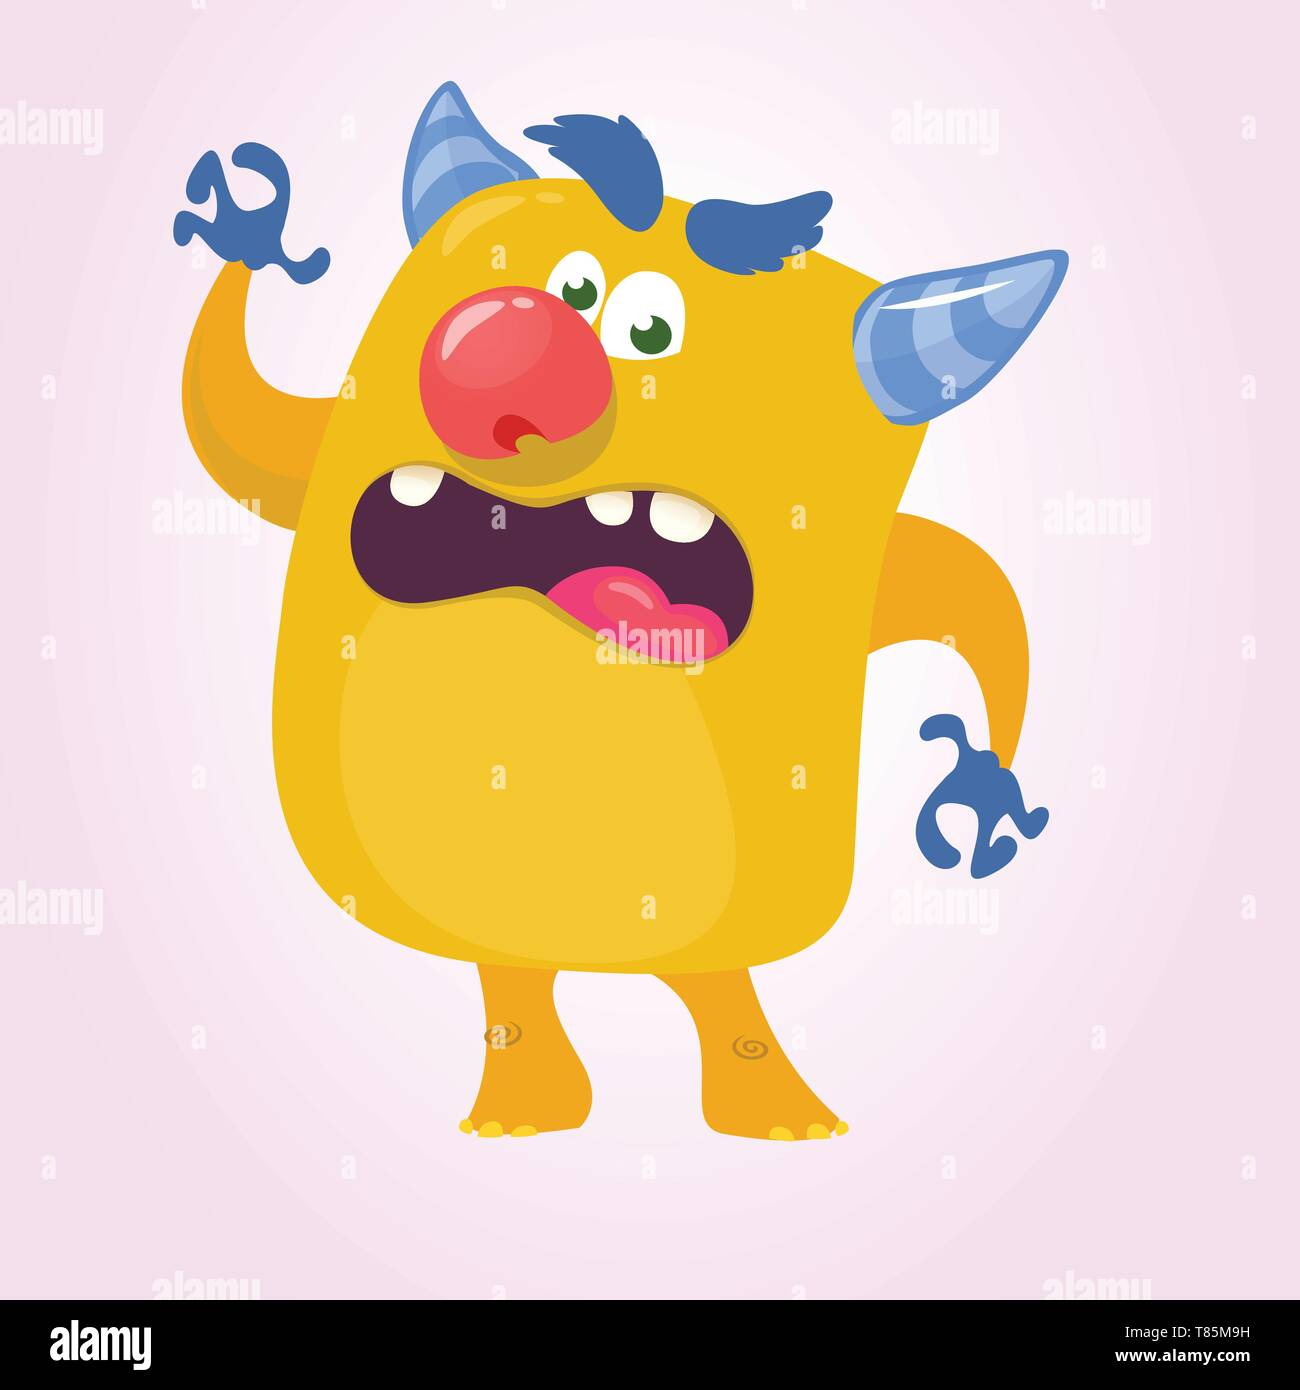 Cartoon Scary Monster With Big Mouth Laughing and waving. Vector yellow monster character illustration. Halloween design - Stock Image